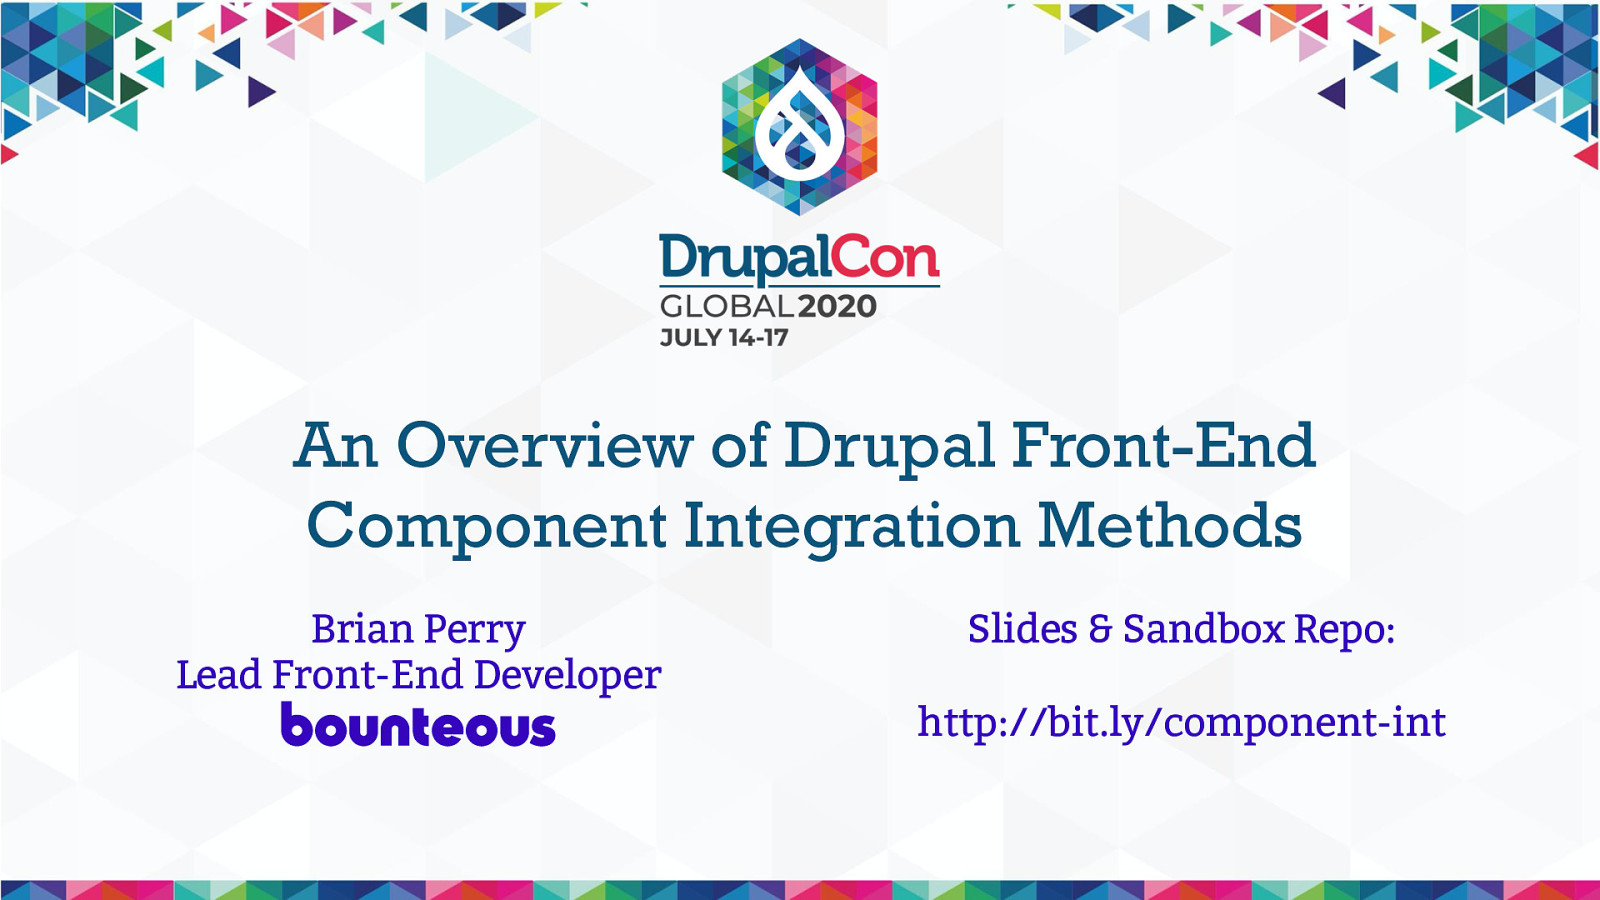 An Overview of Drupal Front-End Component Integration Methods